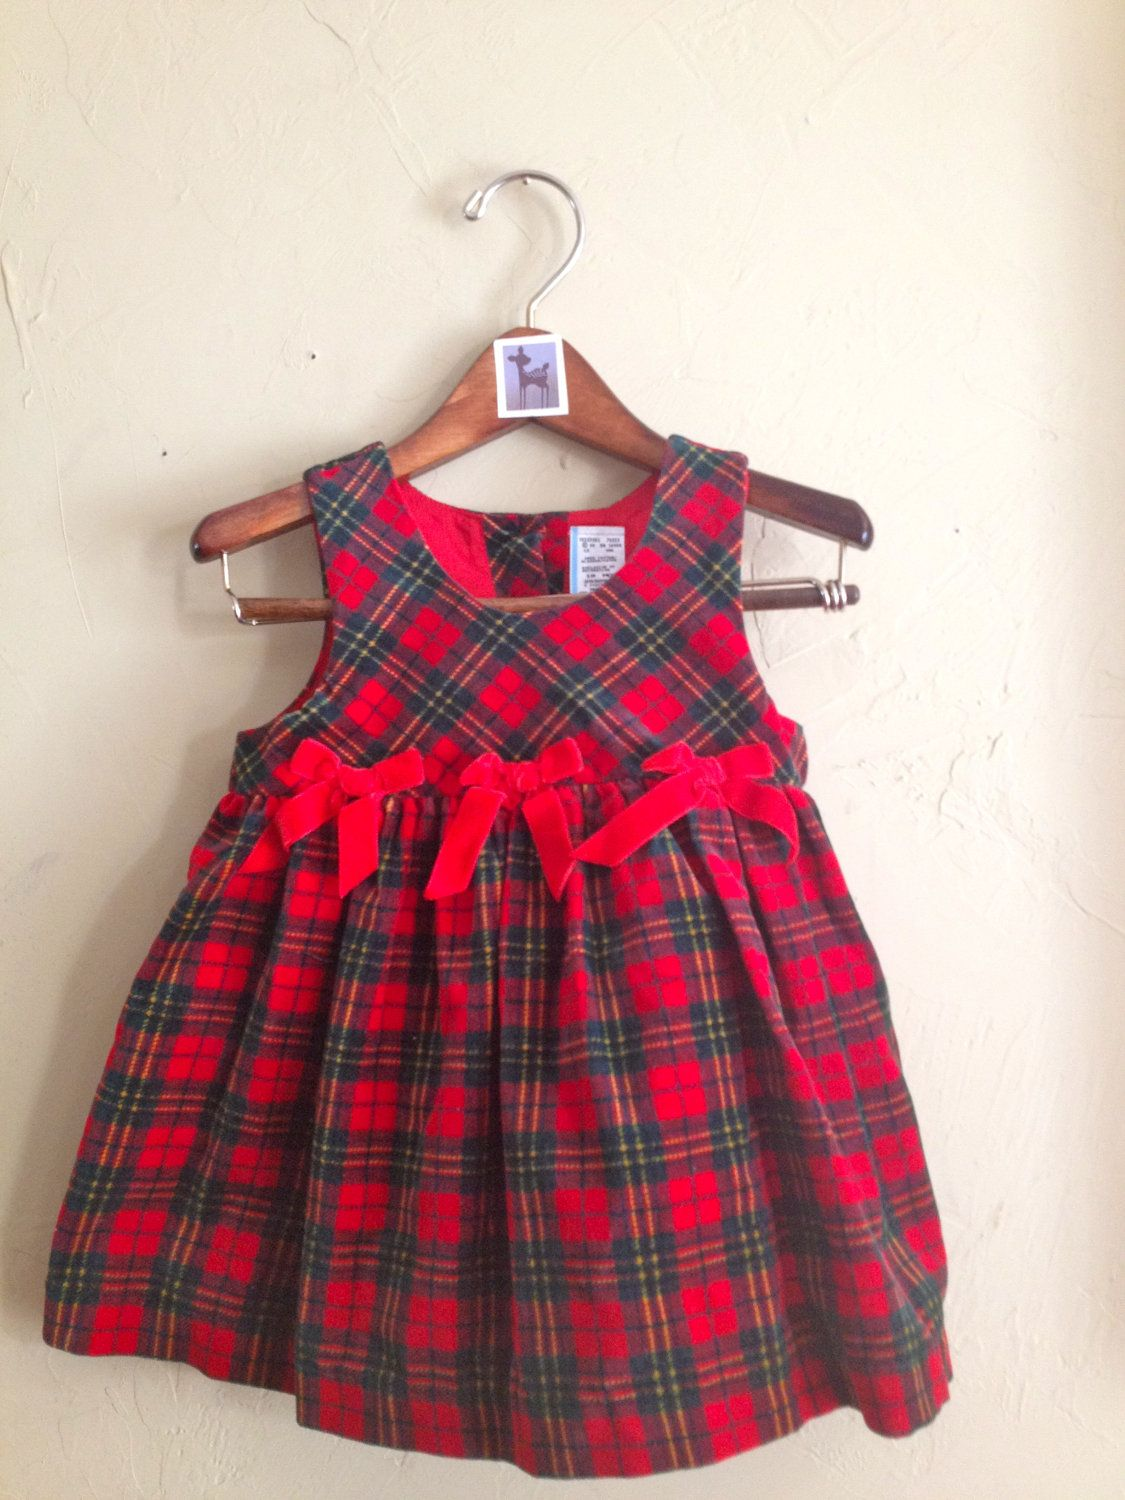 Vintage Red Plaid Velvet Dress 18m. $11.00, via Etsy.